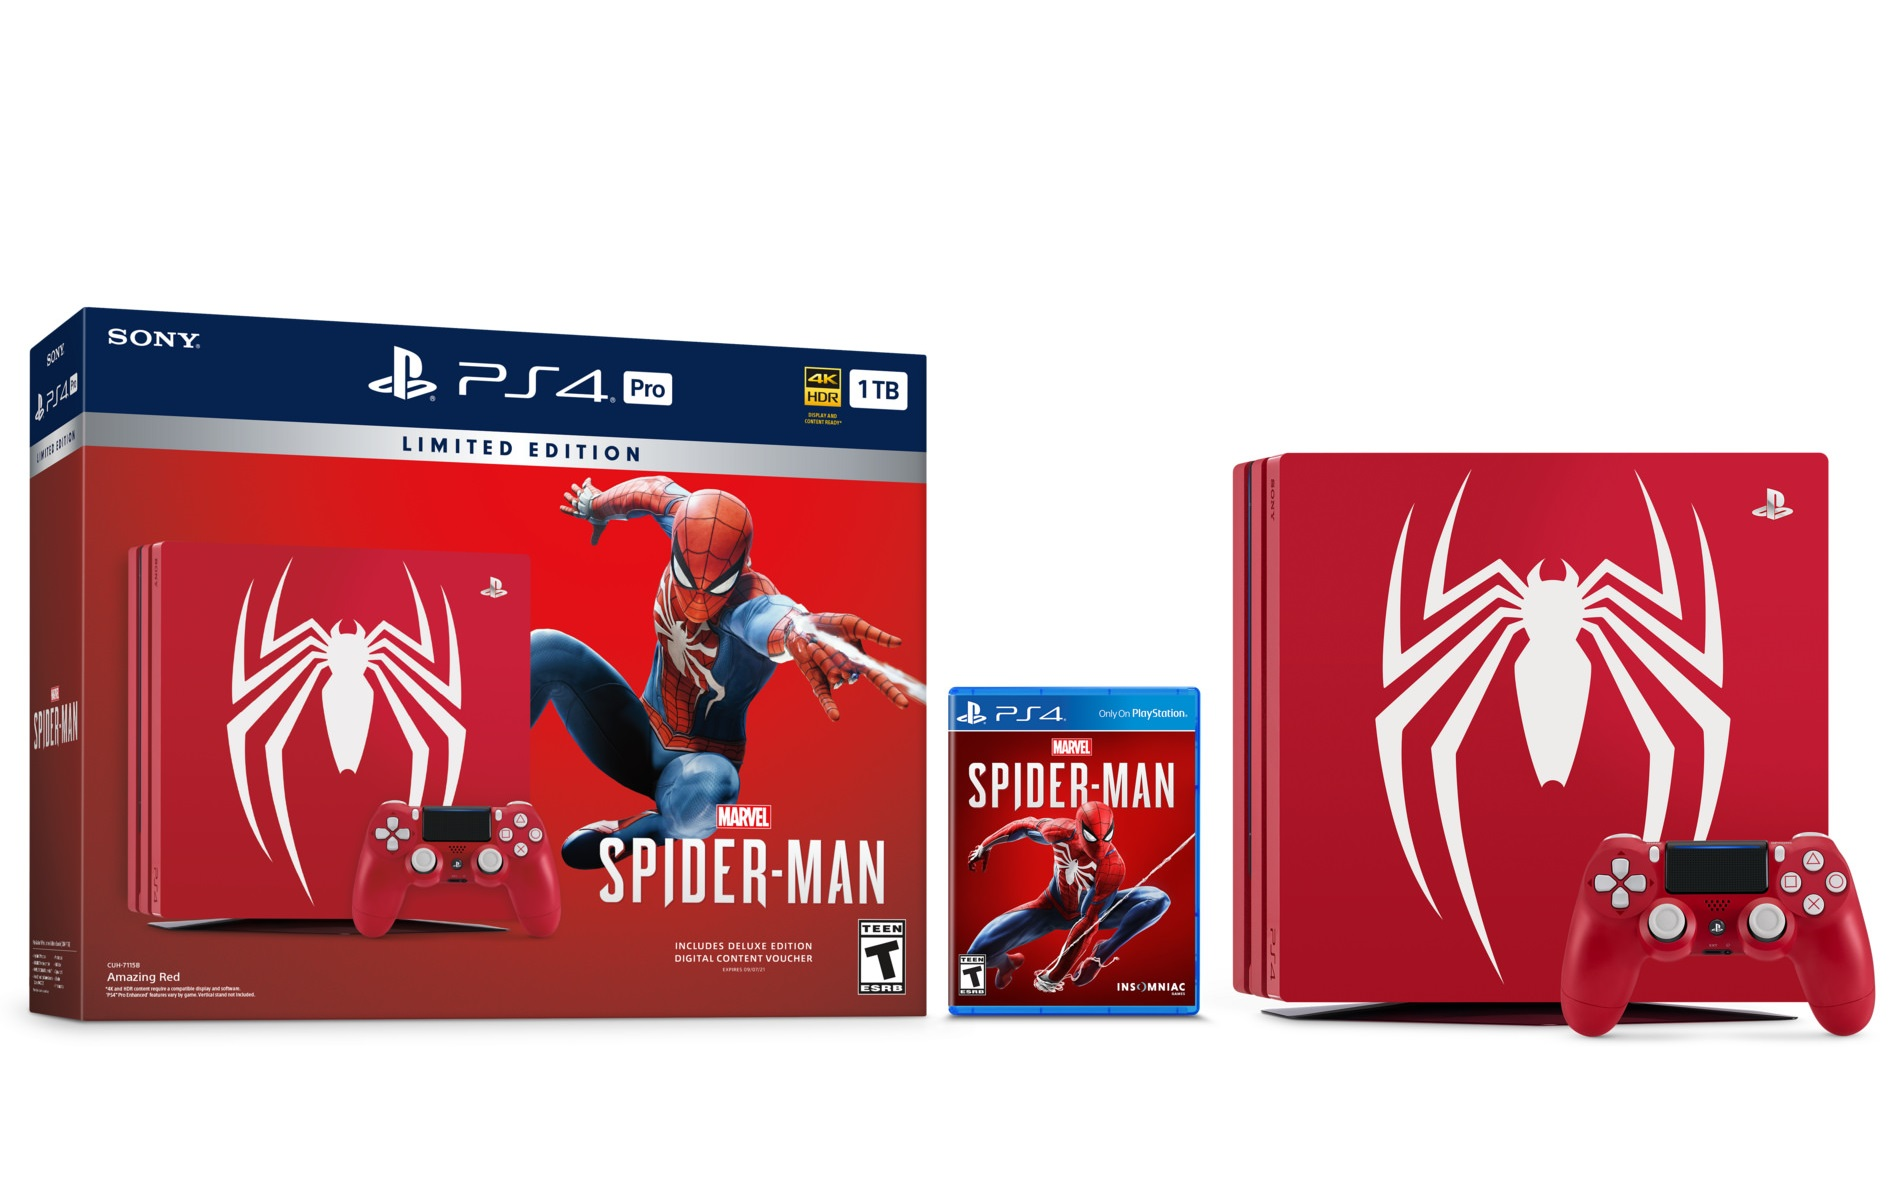 Spider-Man PS4 story and Velocity Suit reveal trailers, PS4 Pro limited edition announced